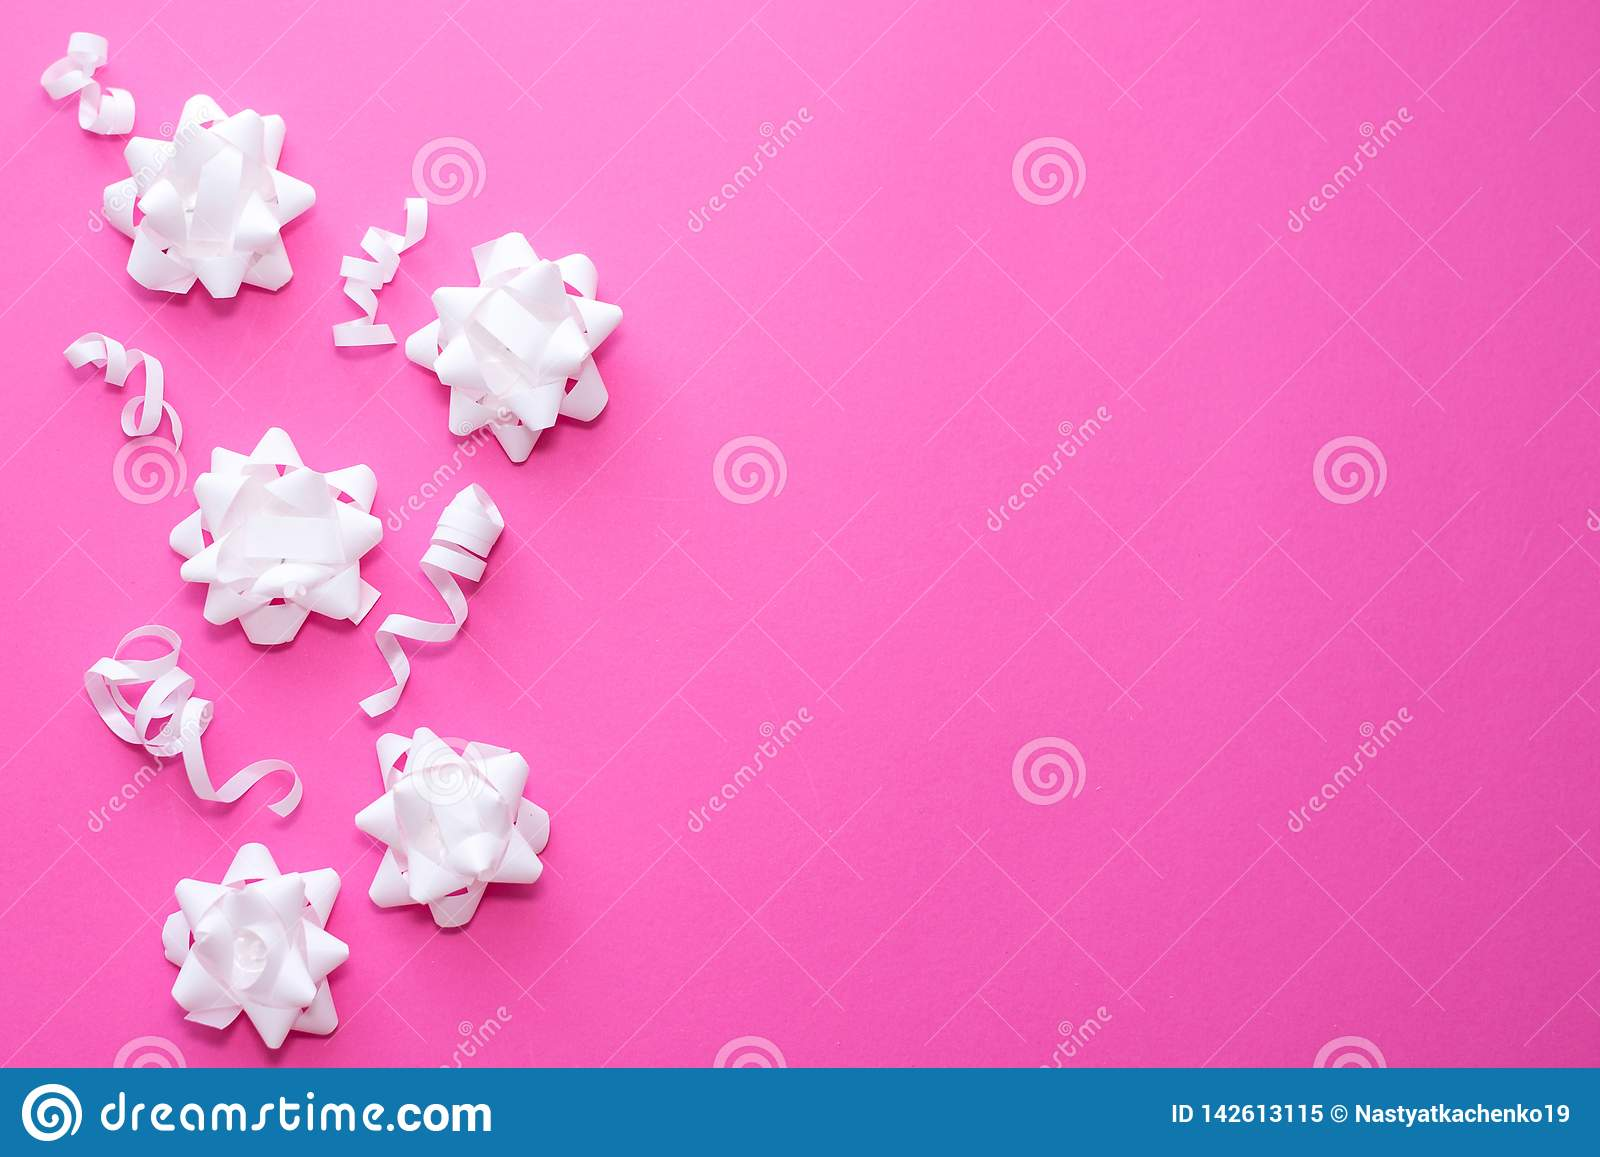 Pattern white flowers on pastel pink background. Flat lay, top view. Celebration concept